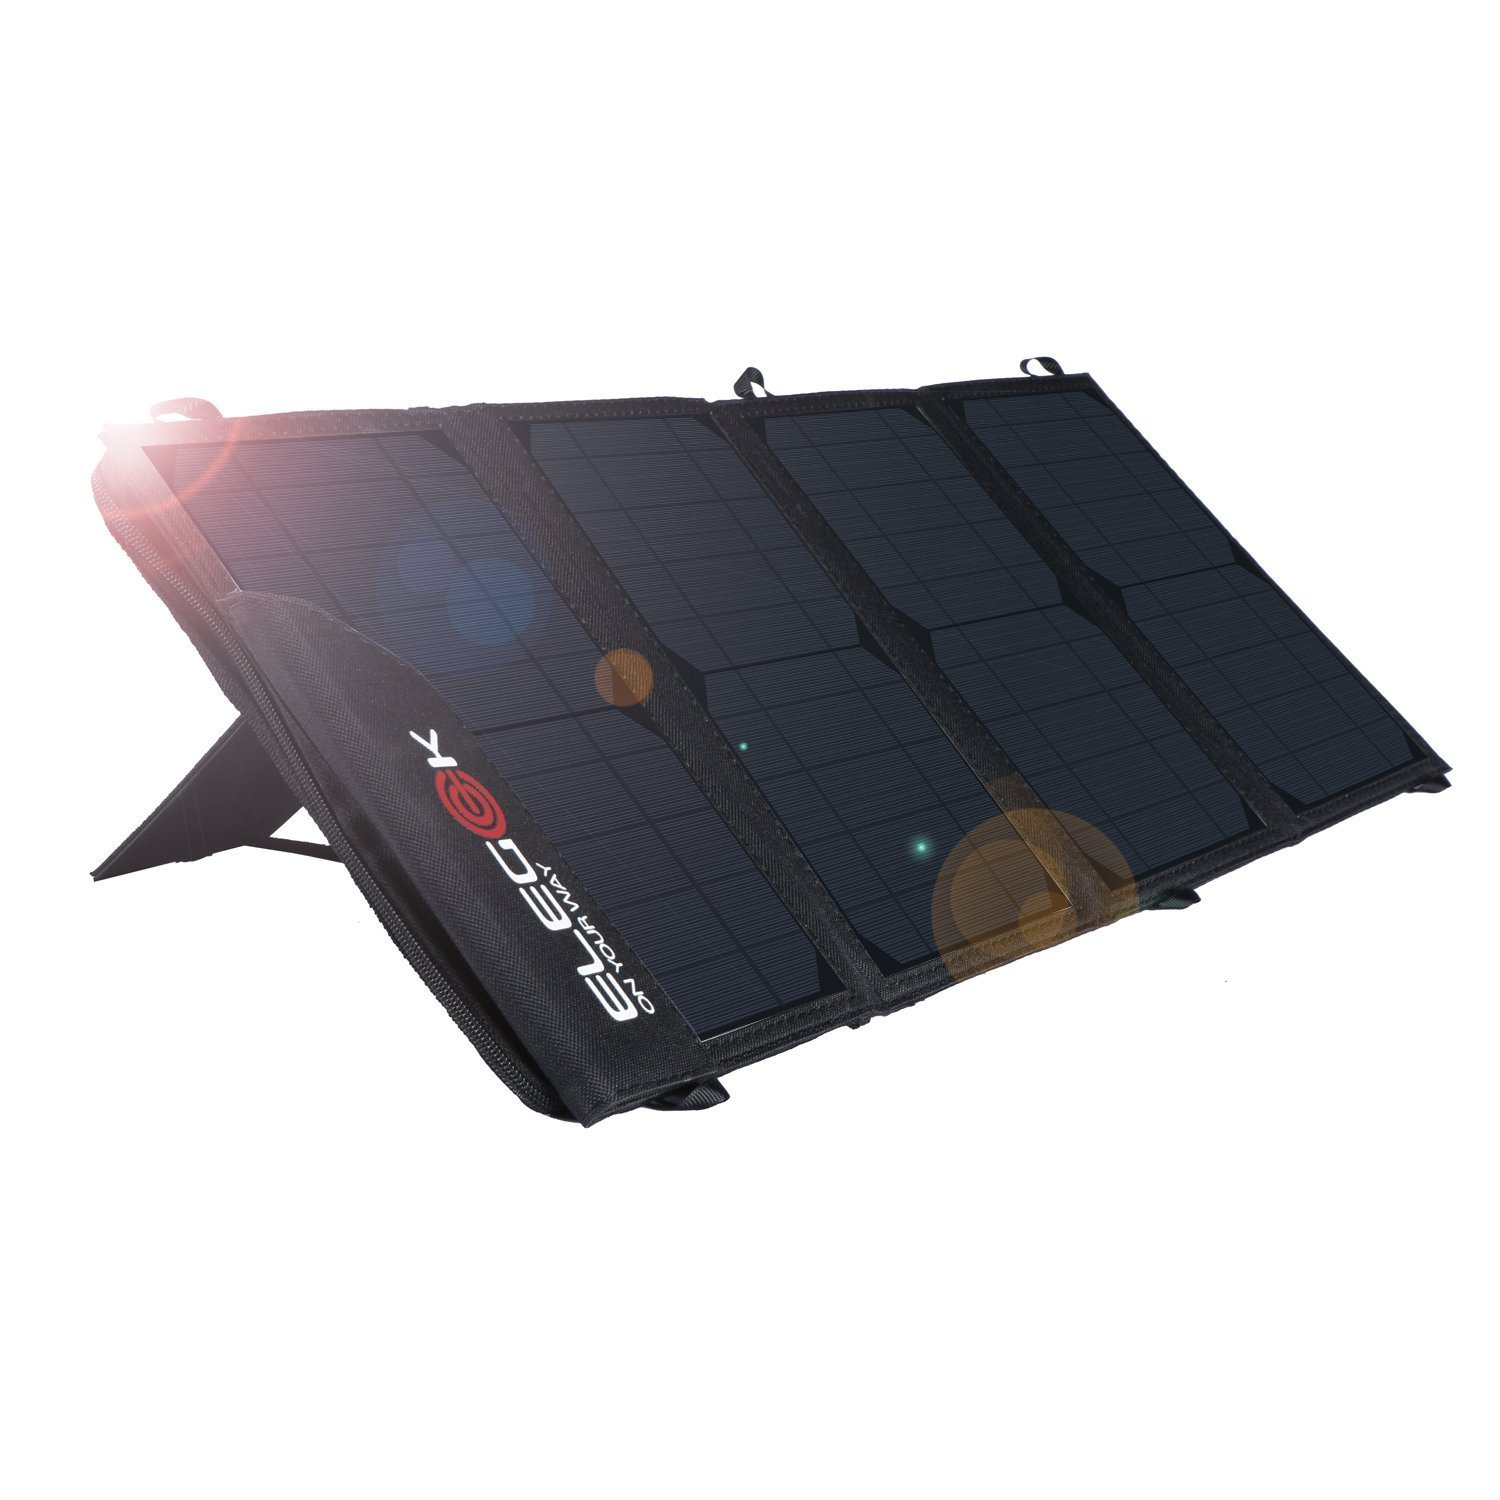 ELEGEEK 22W Foldable Solar Panel Phone Charger for iPhone X, iPhone 8 & 8 Plus, iPad, Galaxy S9, Note 8 in Camping Hiking Travel, Dual USB Ports